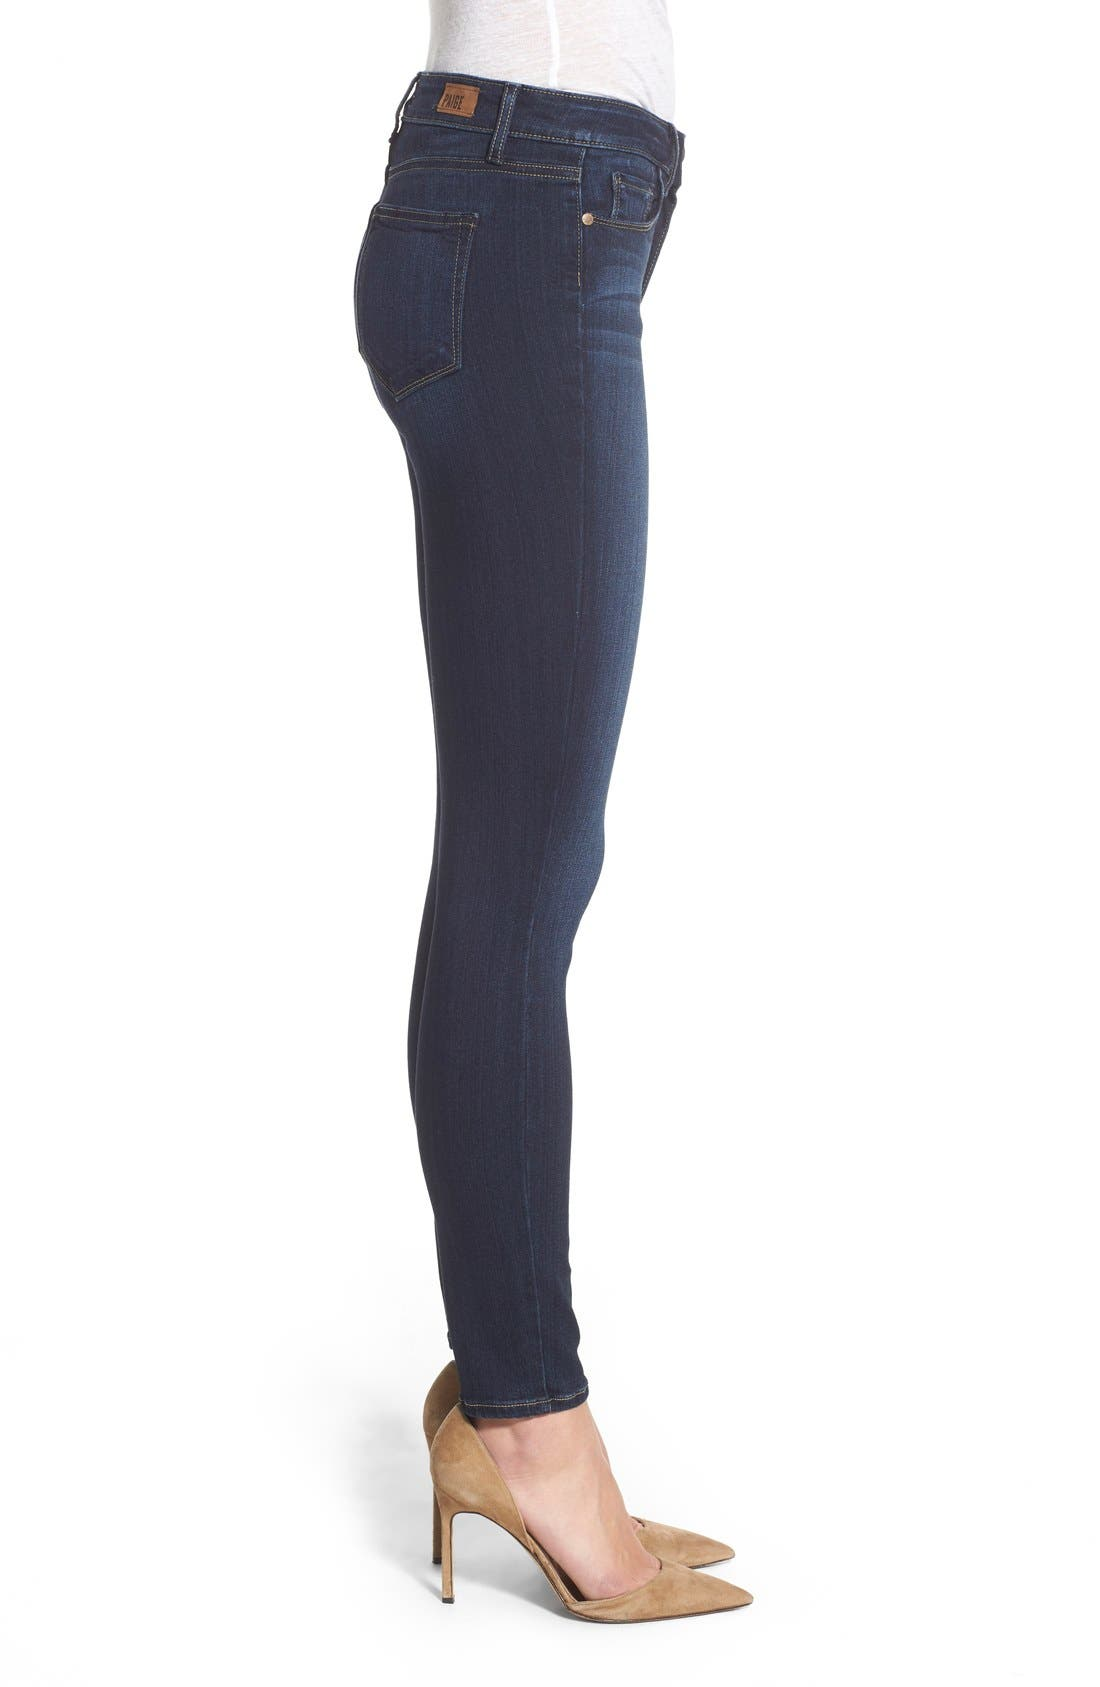 Transcend - Hoxton High Waist Ankle Ultra Skinny Jeans,                             Alternate thumbnail 3, color,                             Hartmann